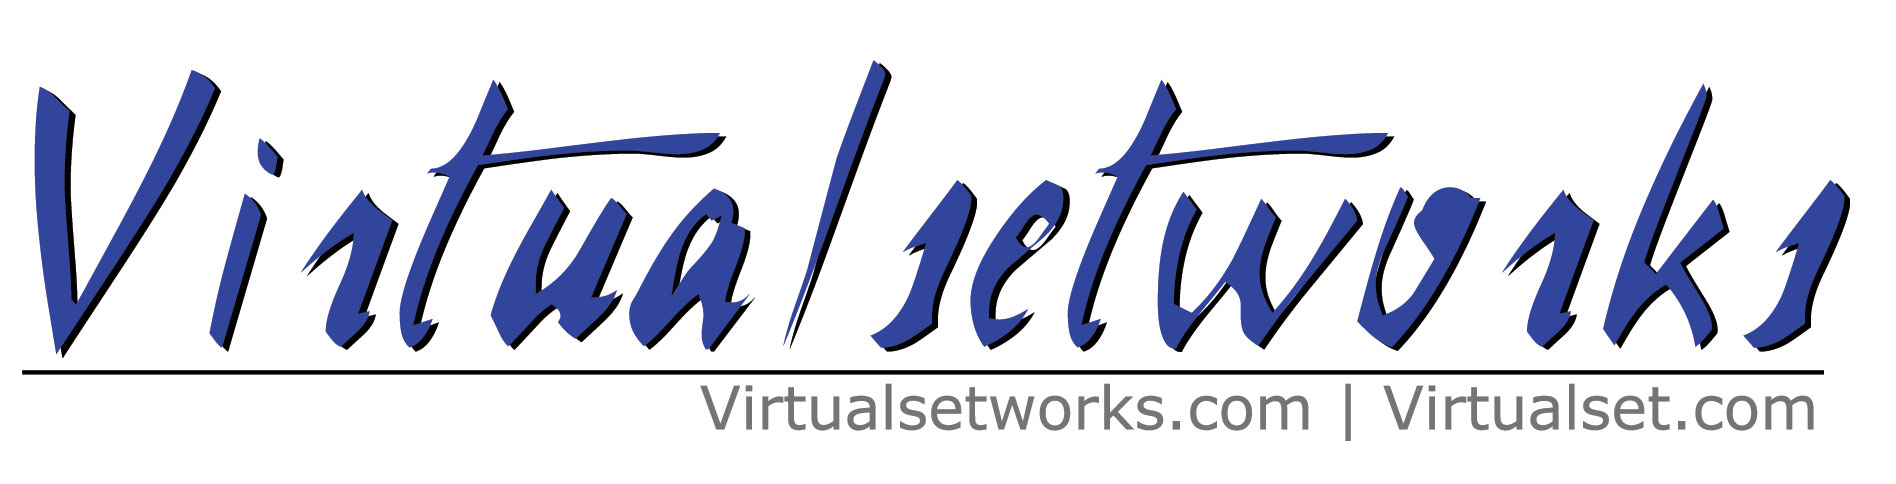 Virtualsetworks